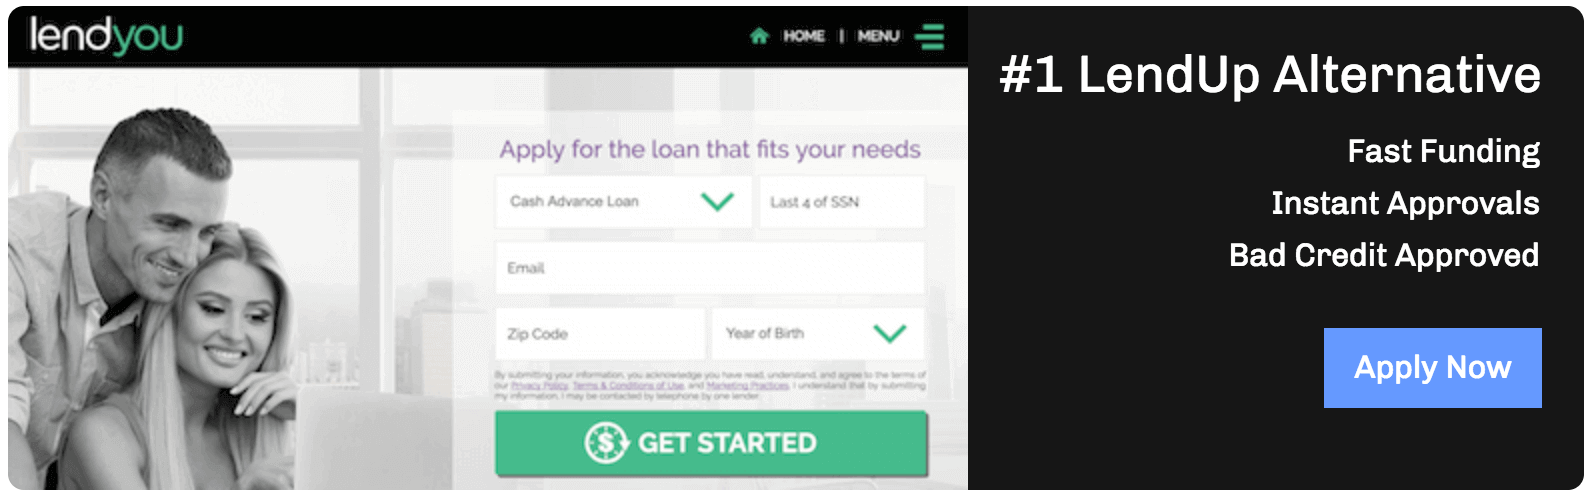 Payday loans online for california picture 4